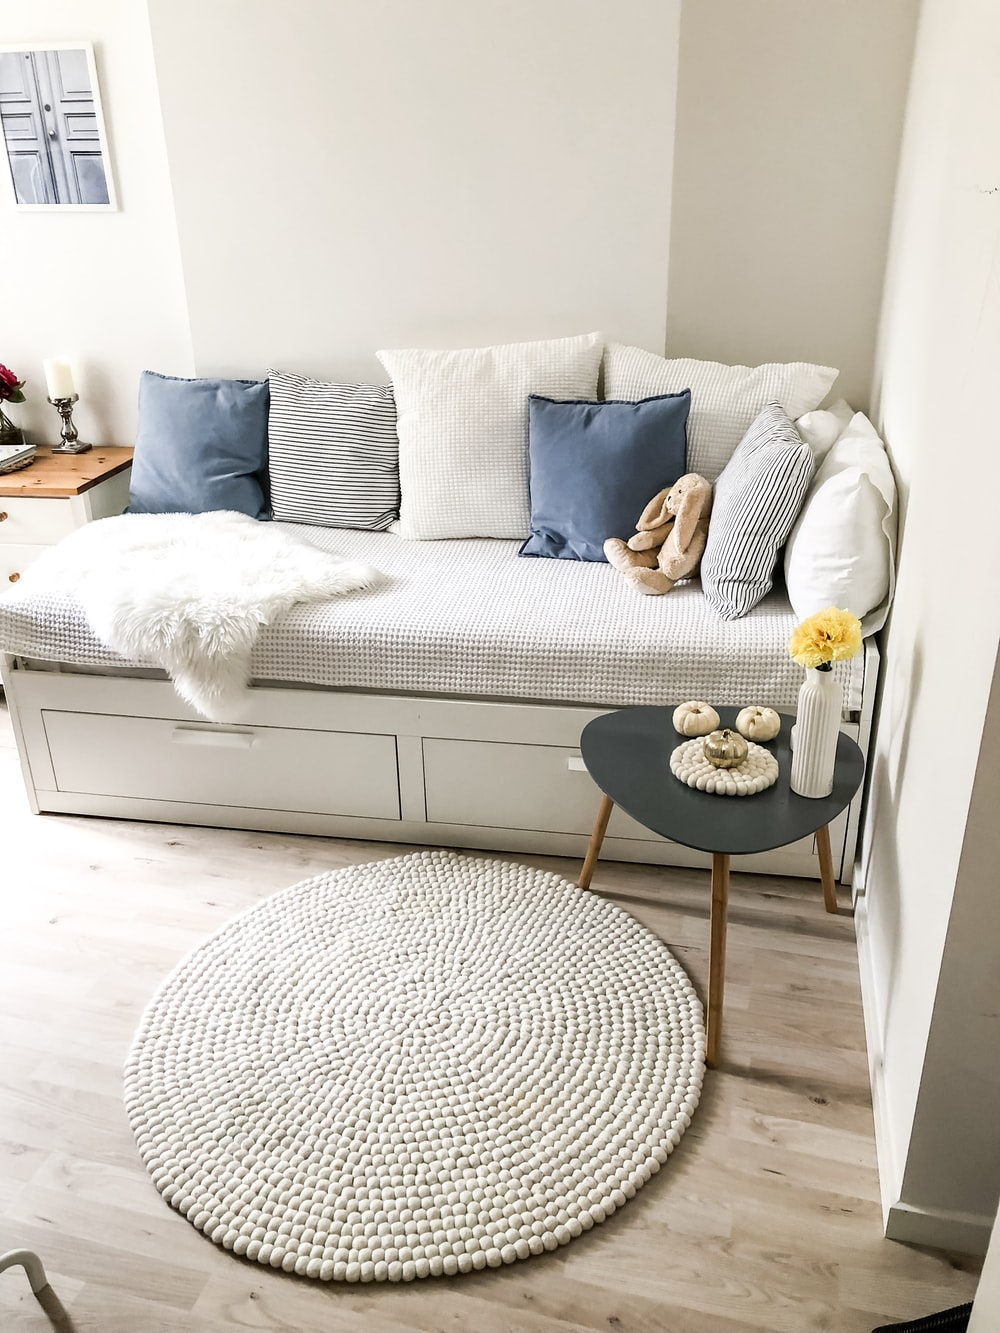 blue and white pillows on white couch and round white area mat on floor